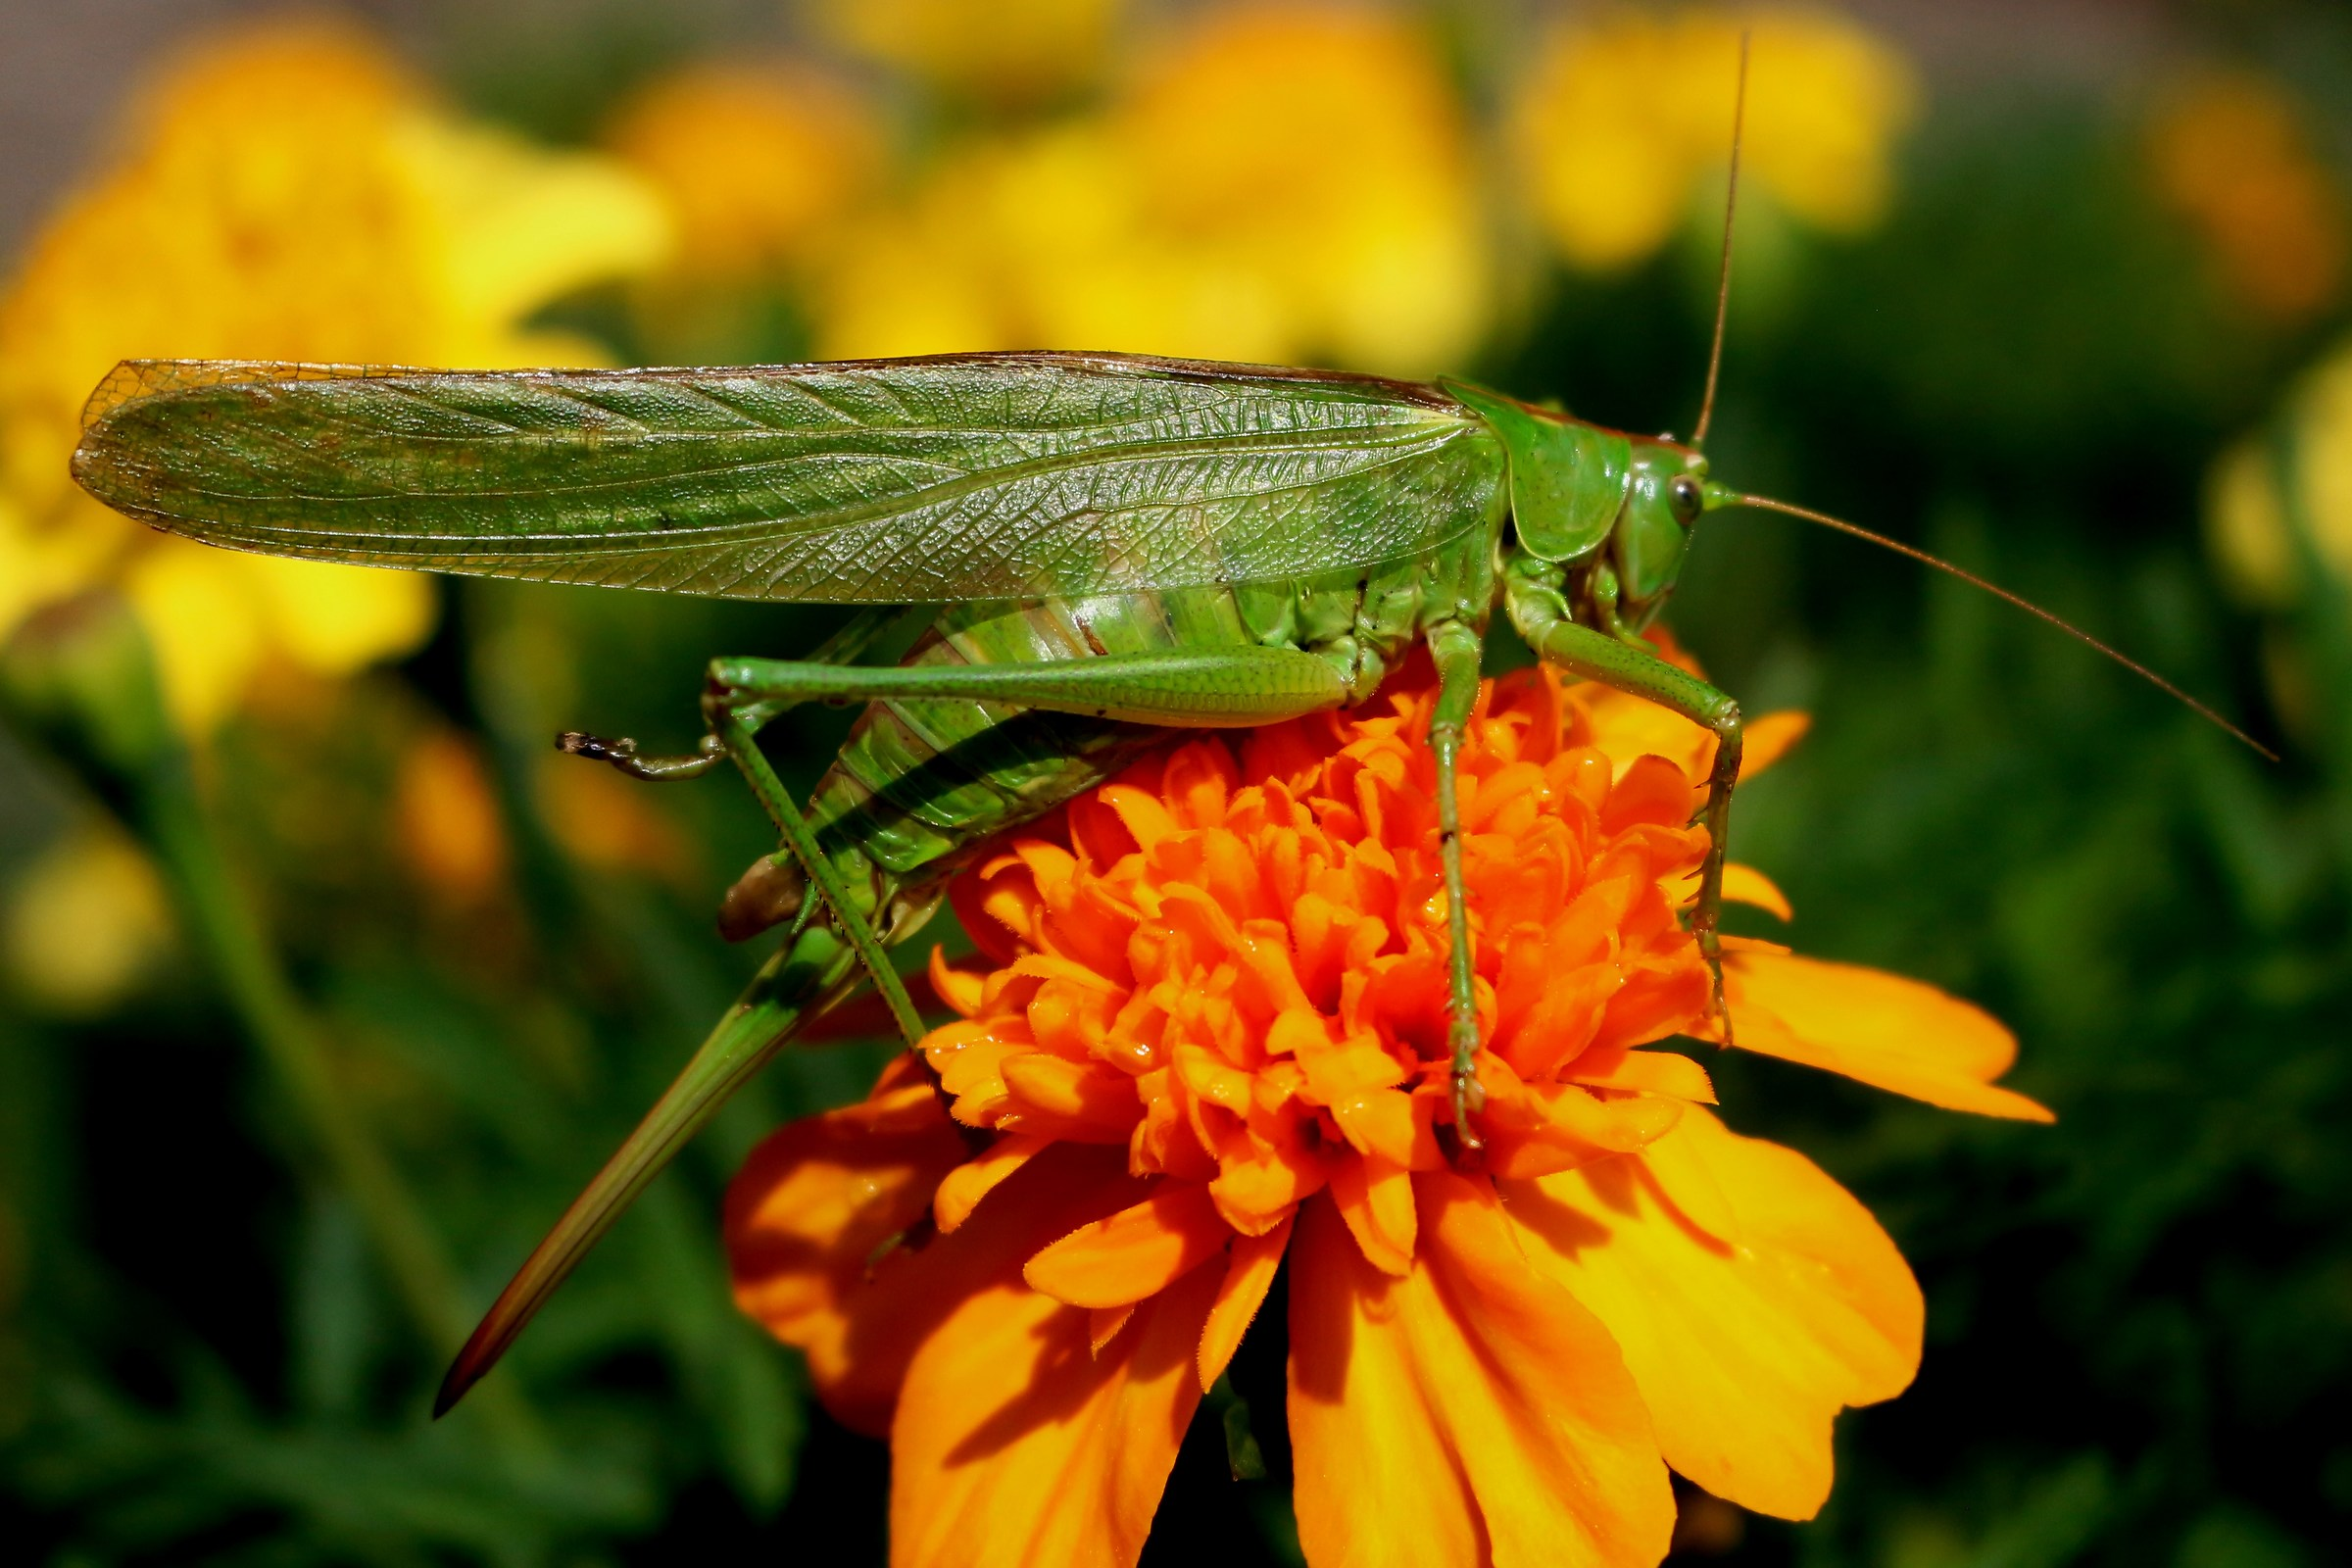 The Green Grasshopper on the marigold...